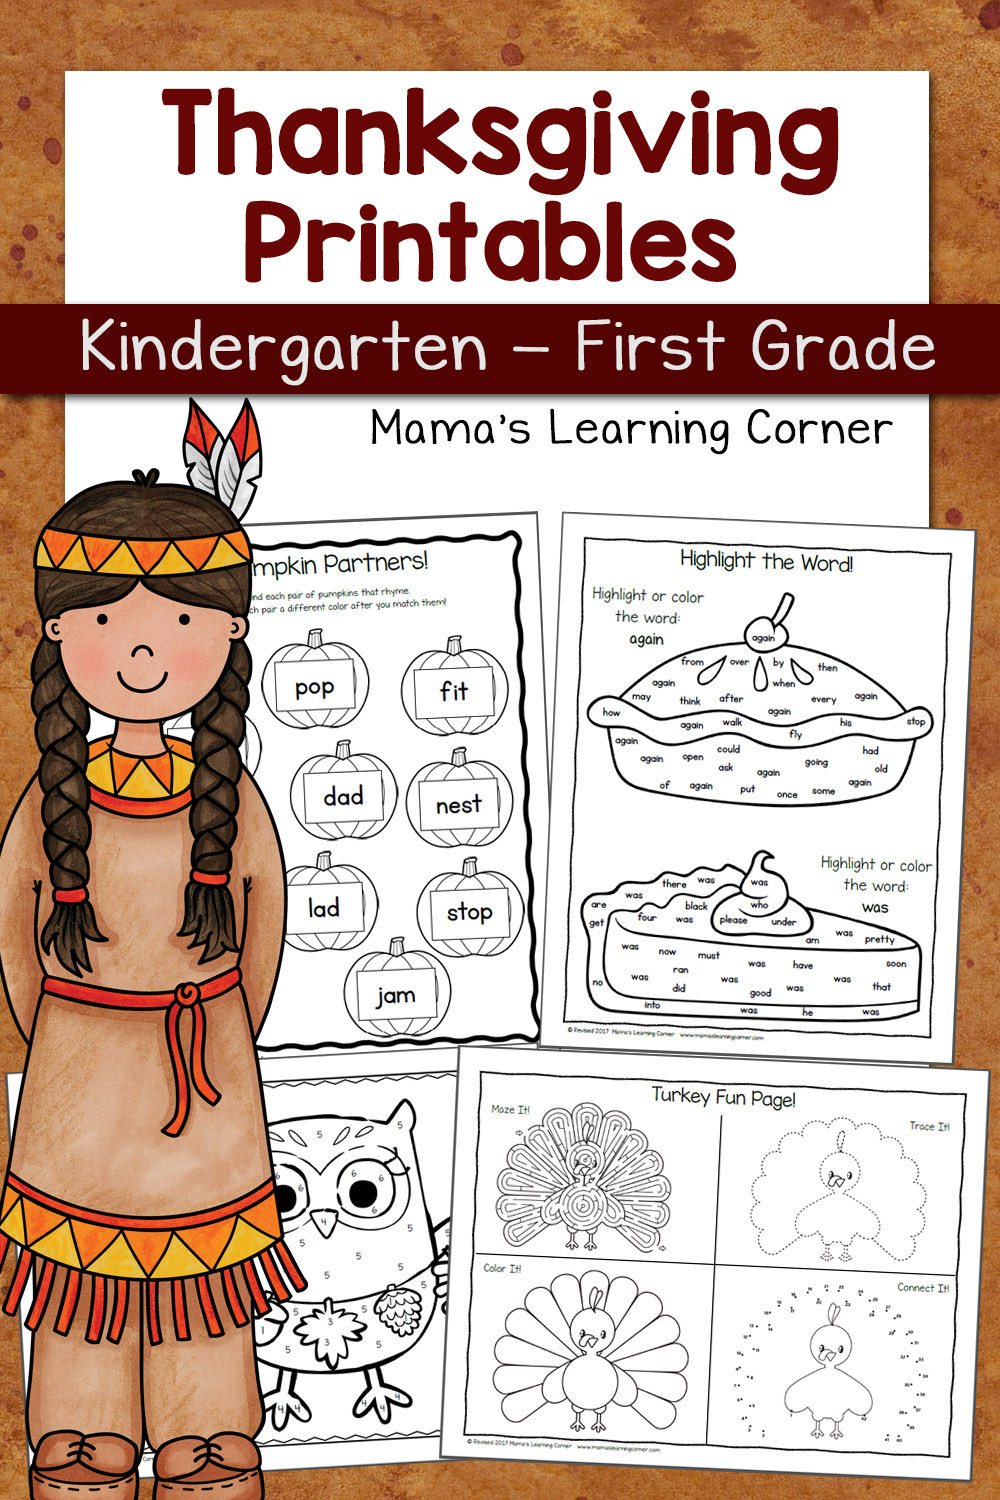 Thanksgiving Math Worksheets First Grade Thanksgiving Worksheets for Kindergarten and First Grade